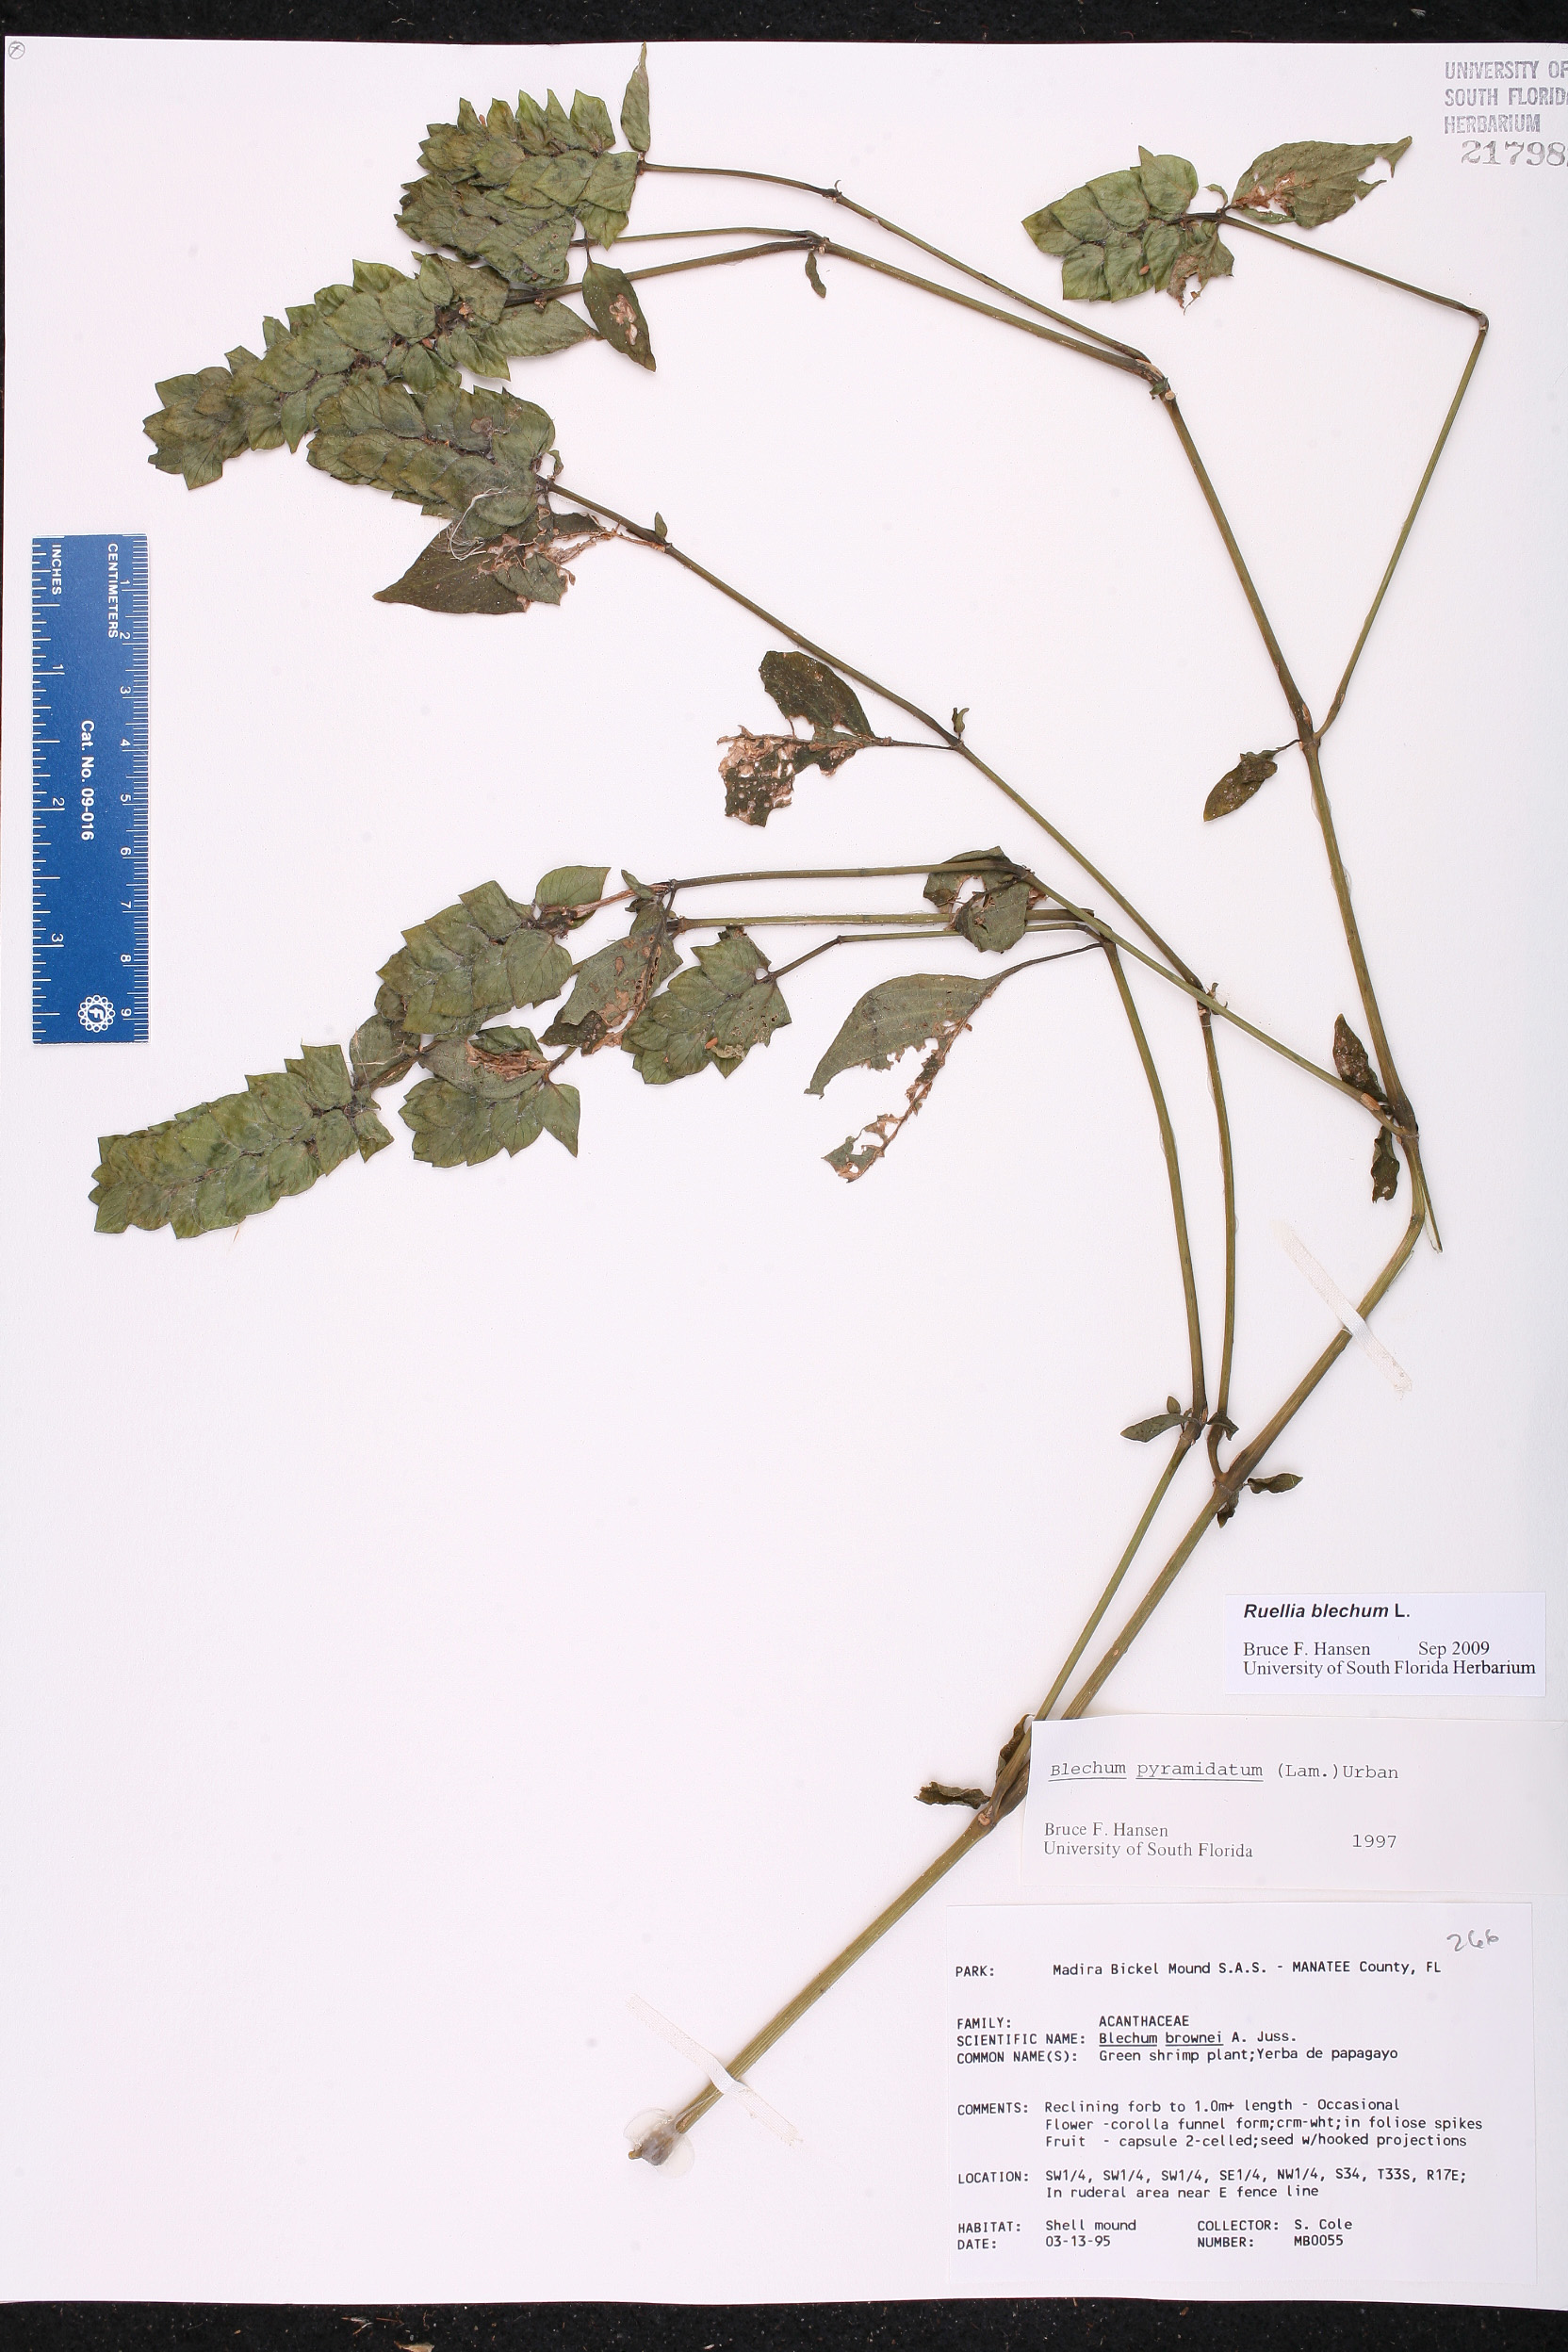 Ruellia Blechum Species Page ISB Atlas Of Florida Plants - Usf location map